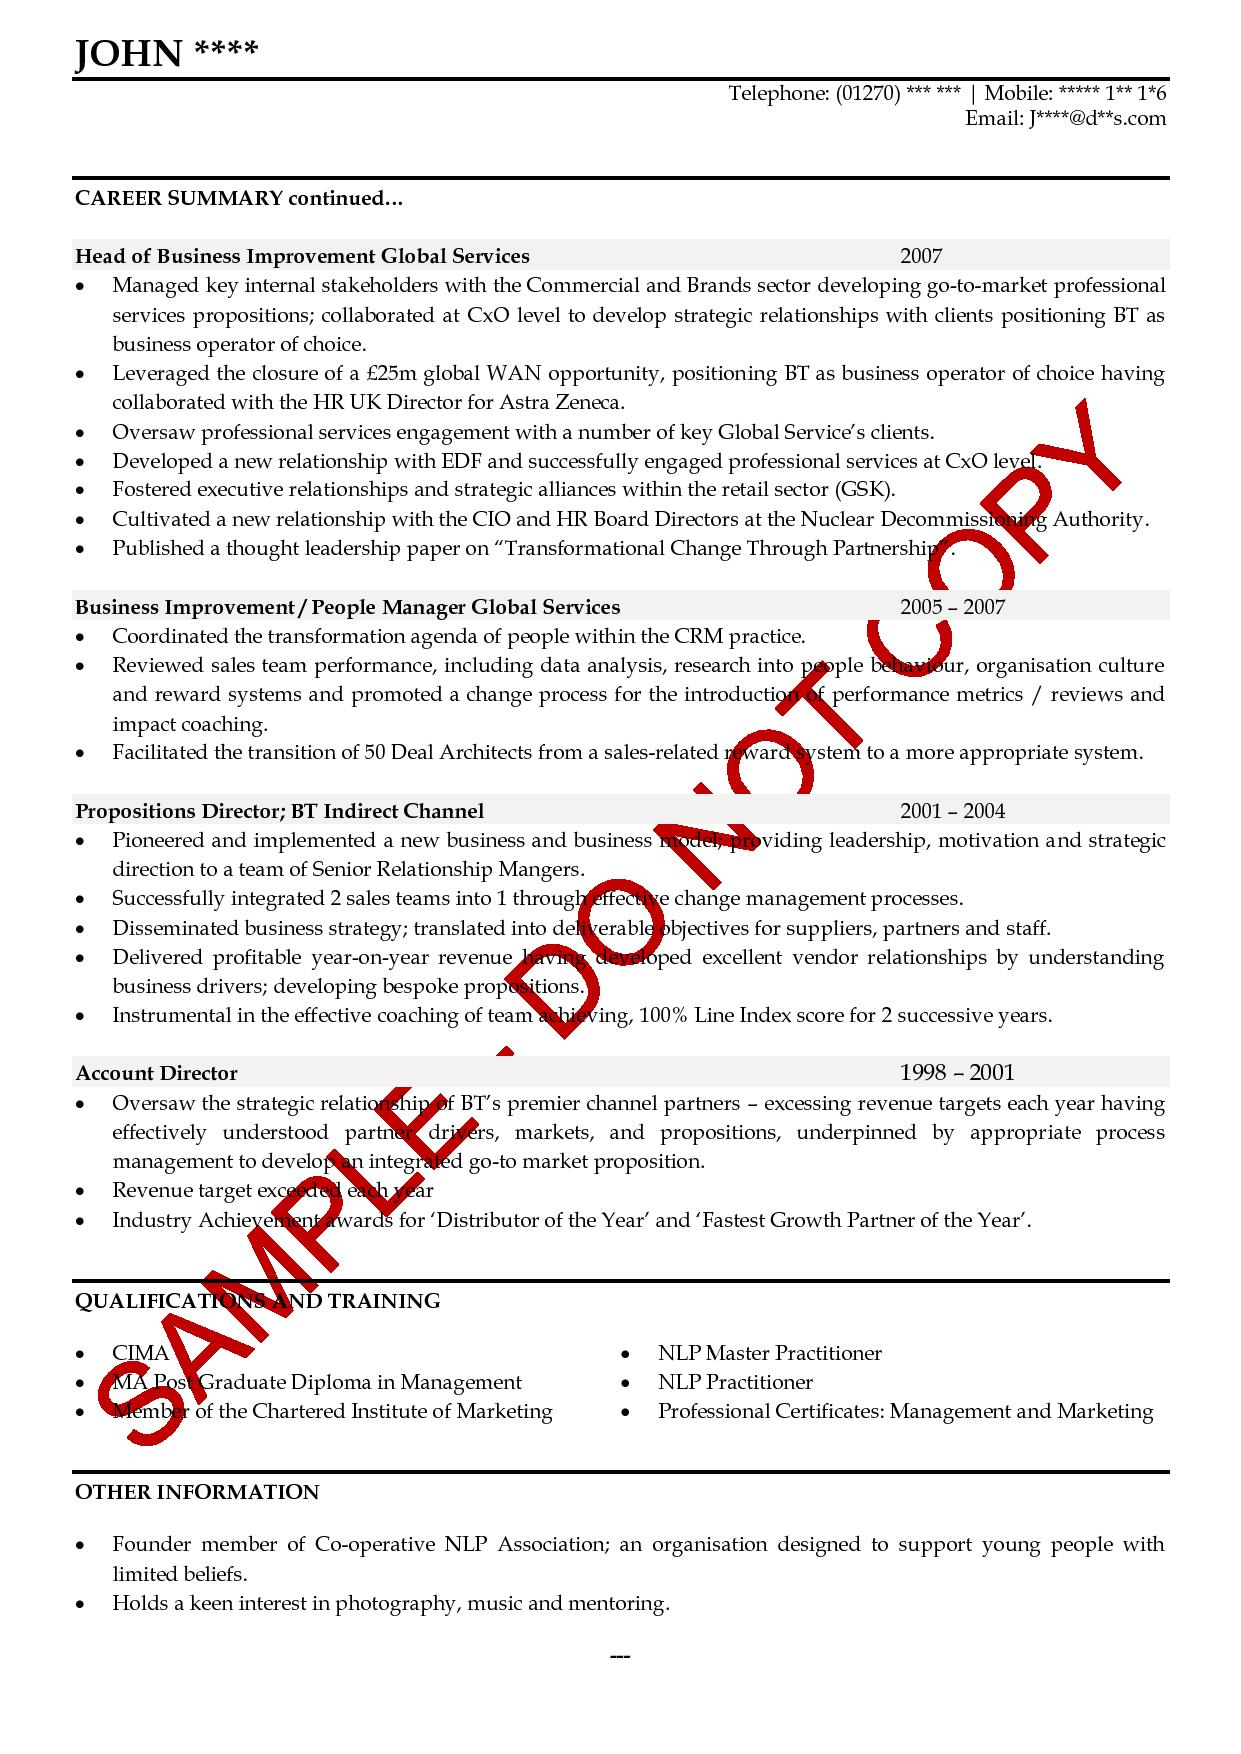 Careerperfect Best Professional Resume Writing Services Example Cv Over 50 Essay Writers Service Buy